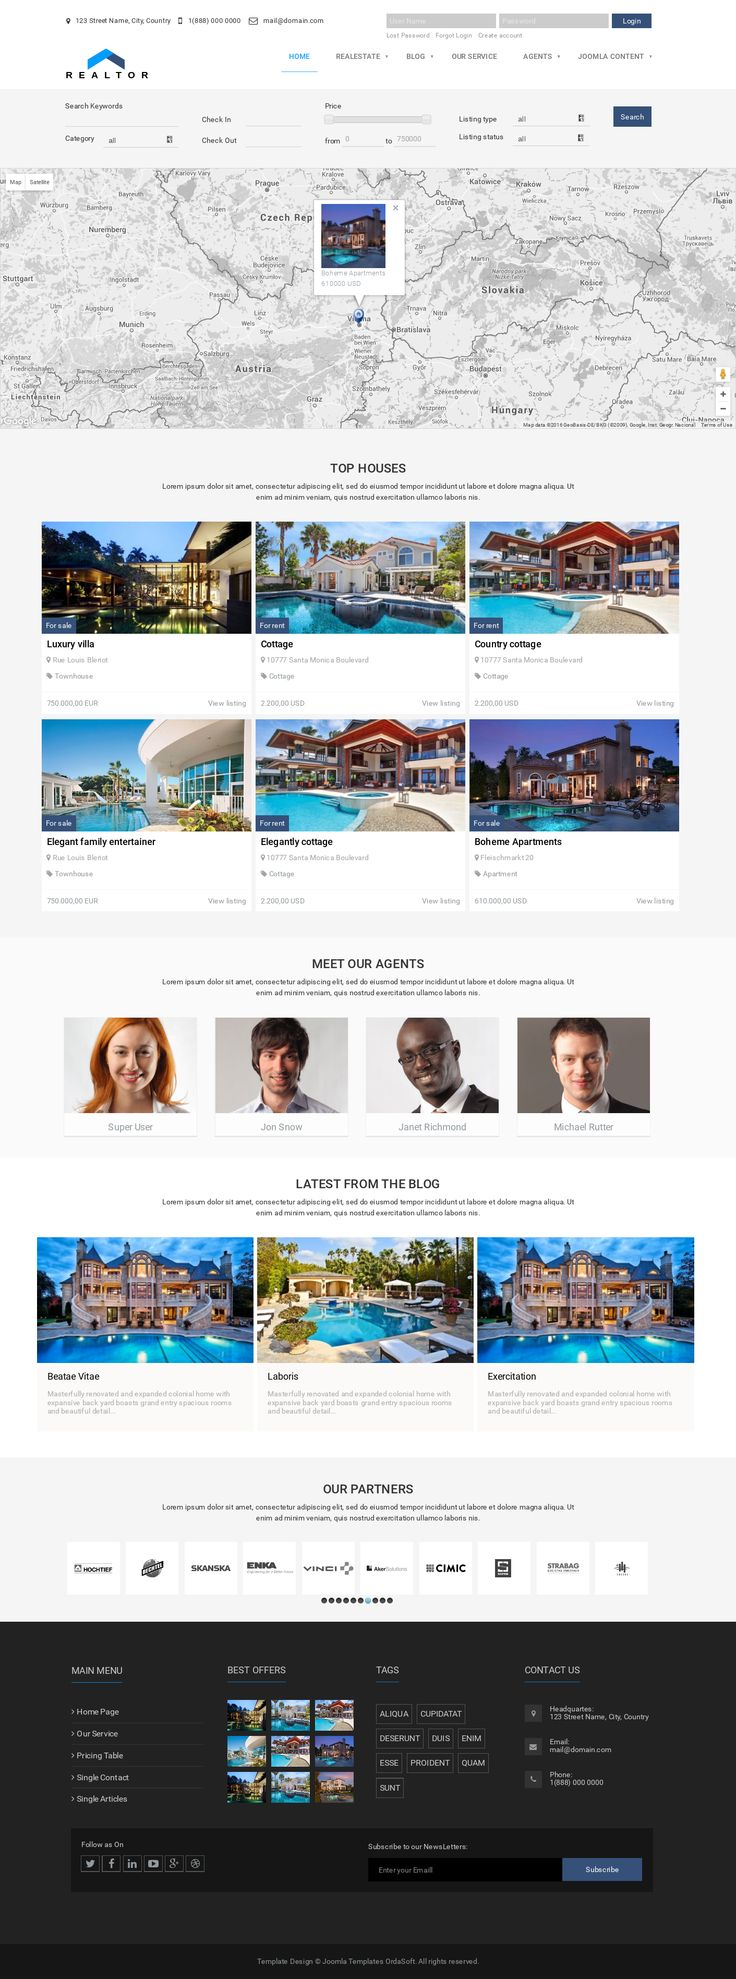 Meet the last word in template design and functionality - Realtor Joomla Template. Realtor is premium template tailored for home for sale, real estate websites. Joomla property template is 100% responsive, clean and stylish.